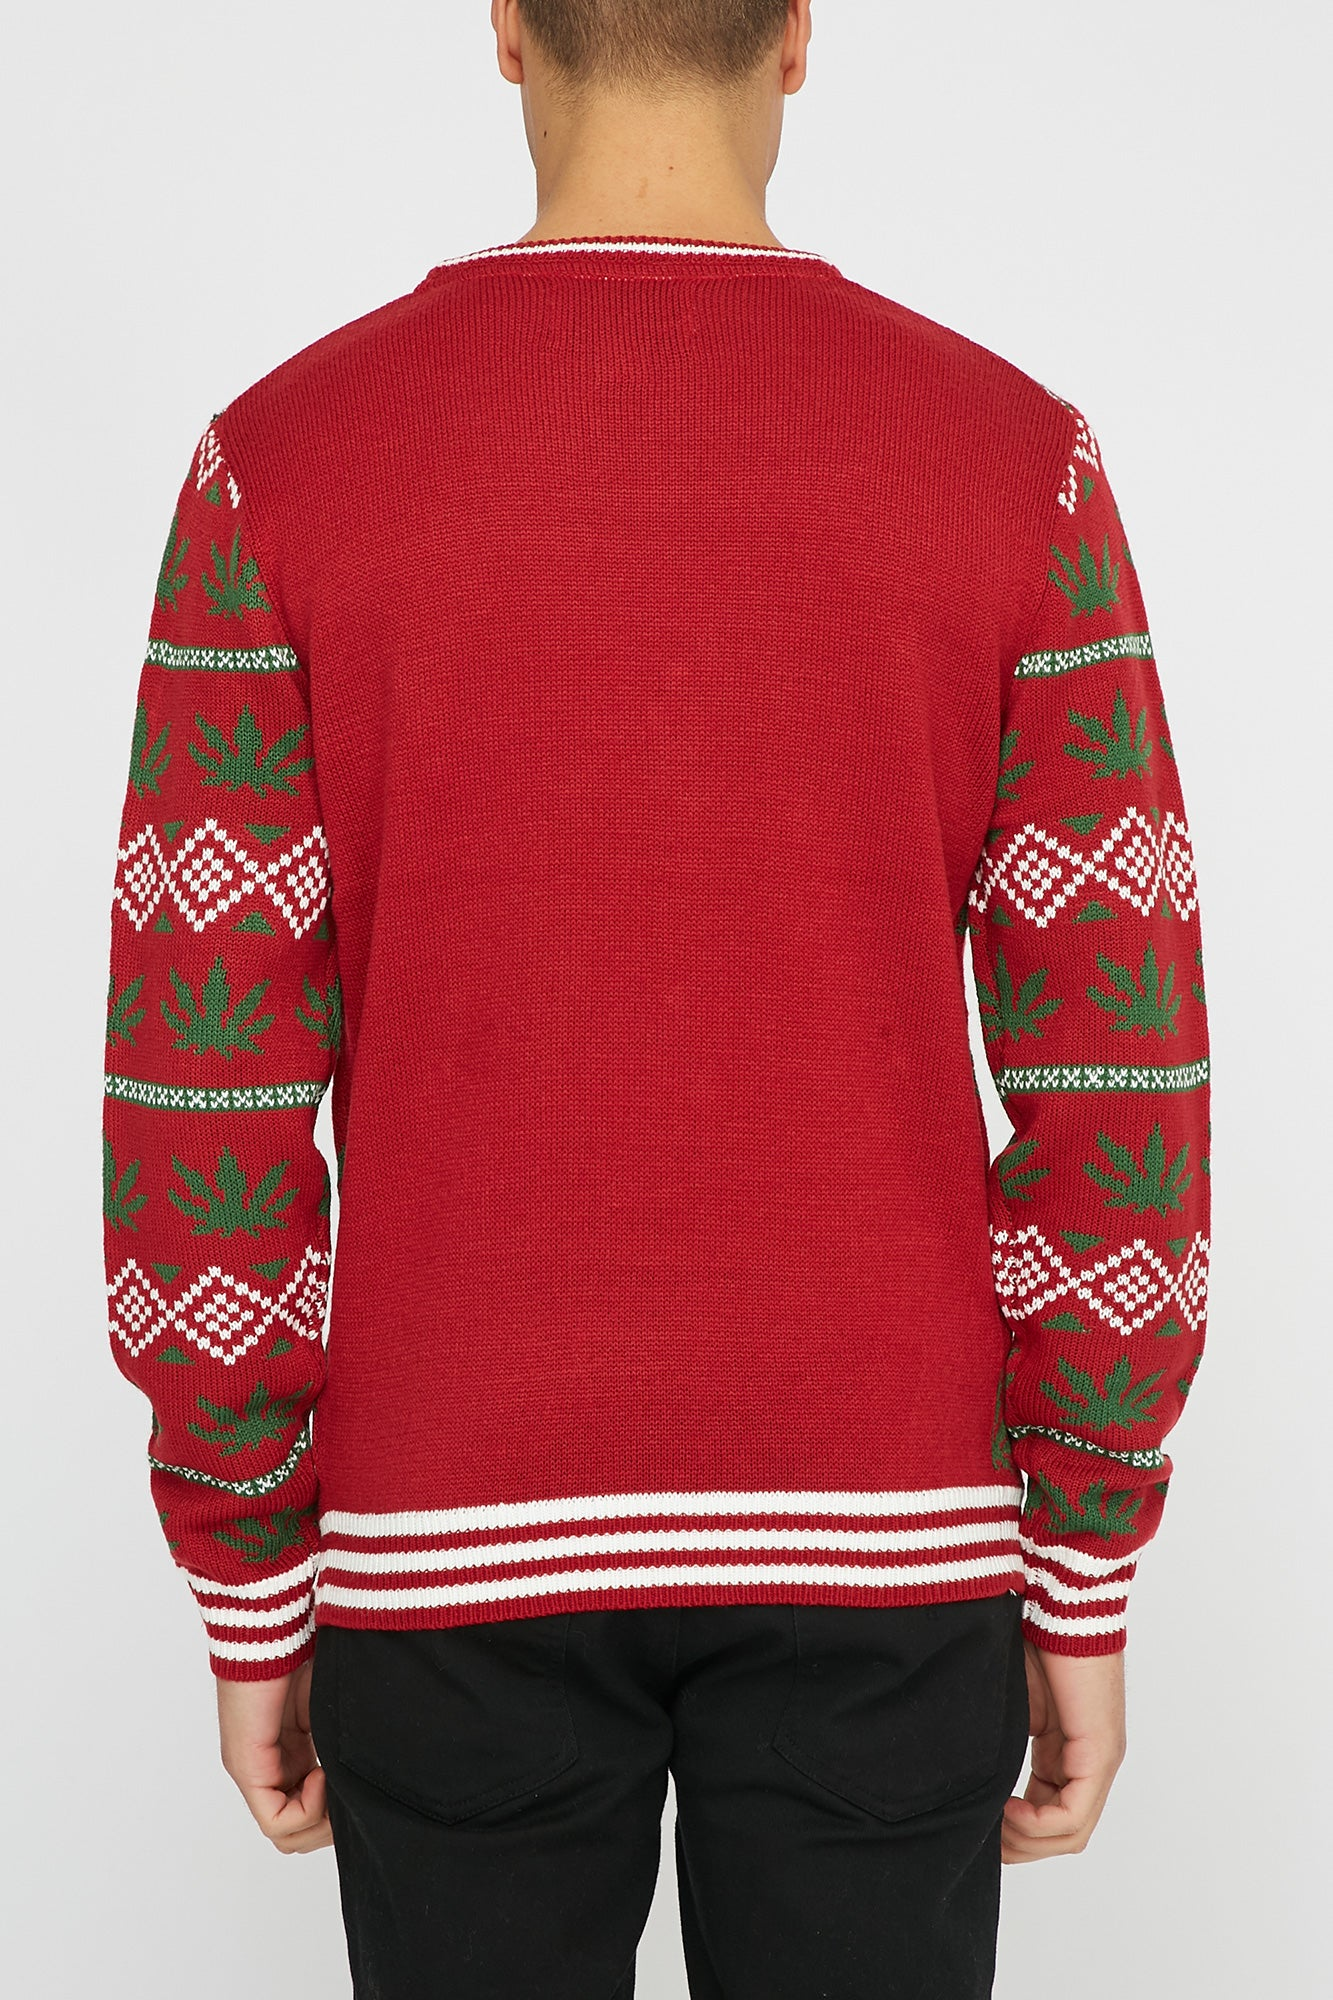 West49 Happy Holiblaze Sweater